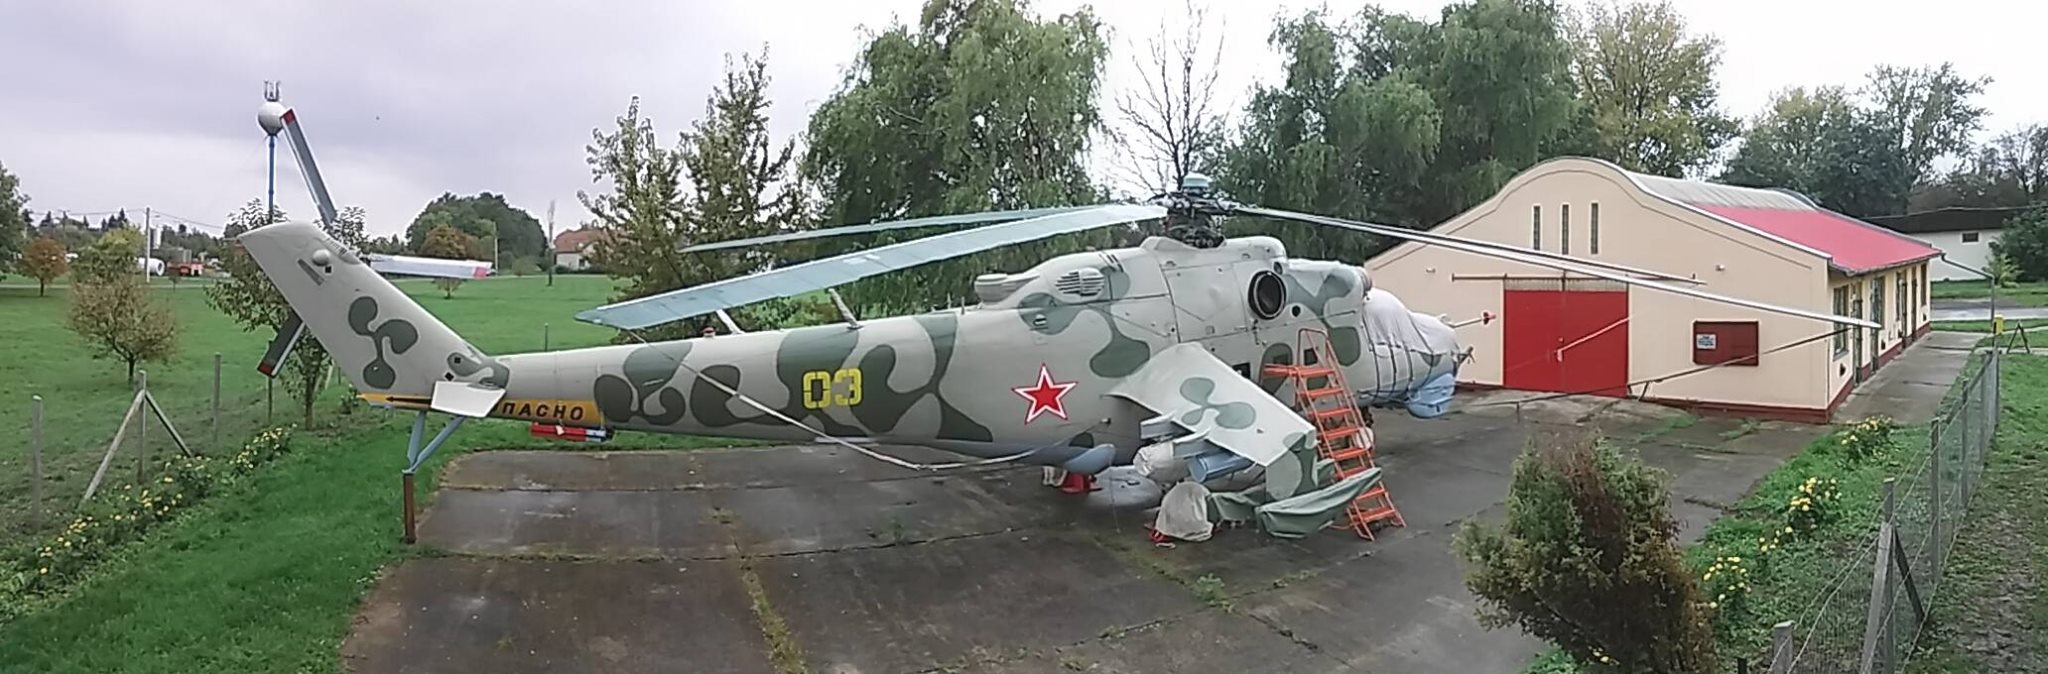 Freshly restored Mi-24D of the museum: this very machine was the very first export Mi-24 in the world! (ex. NVA Mi-24D 403, and later Bundeswehr 96+20)